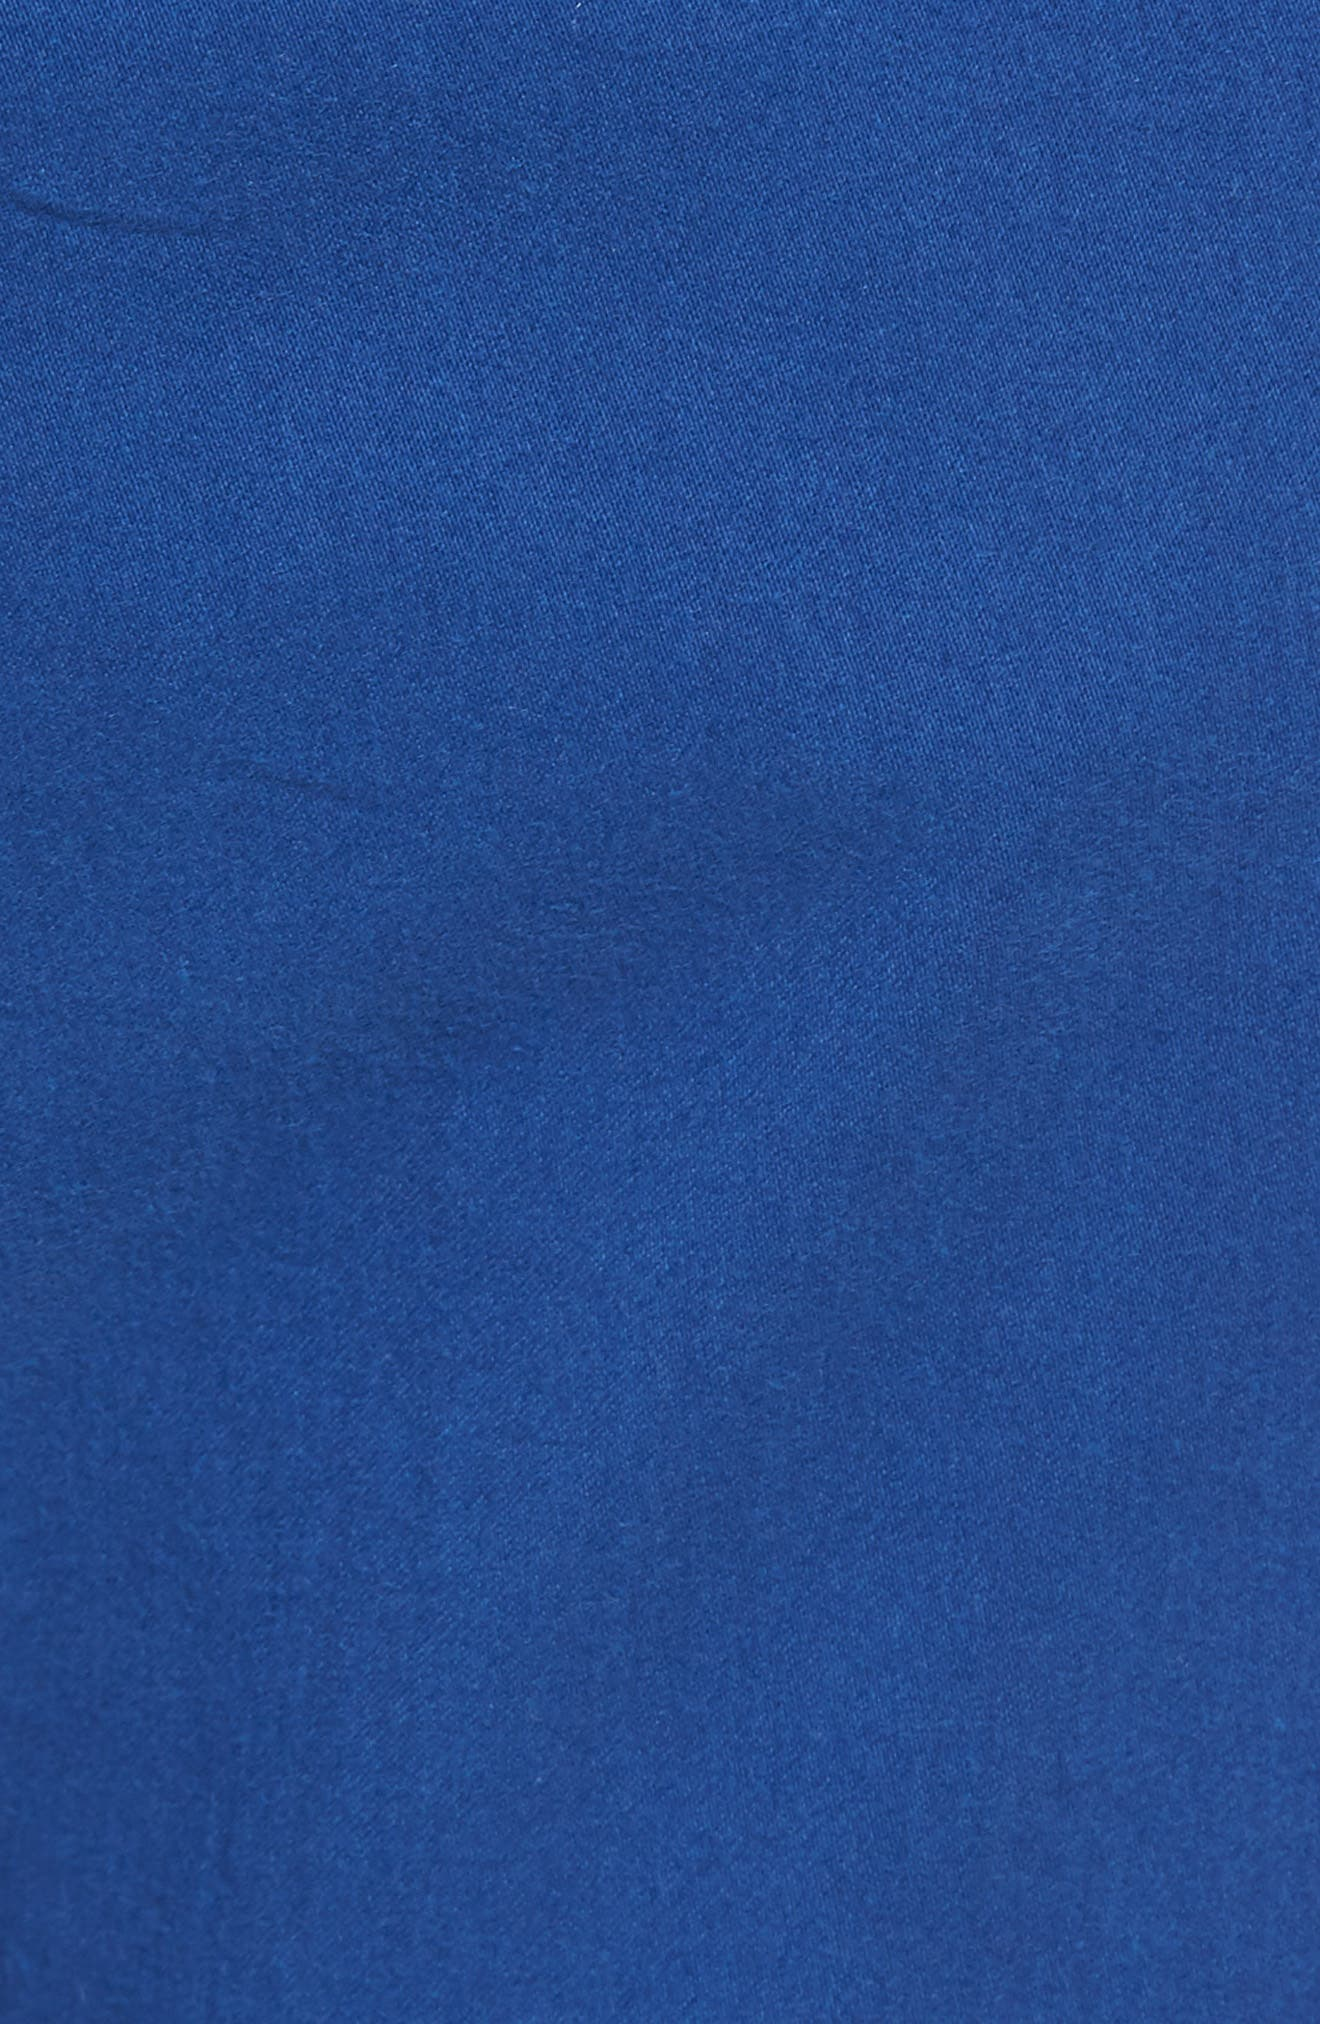 Charisma Relaxed Fit Jeans,                             Alternate thumbnail 5, color,                             ROYAL TWILL